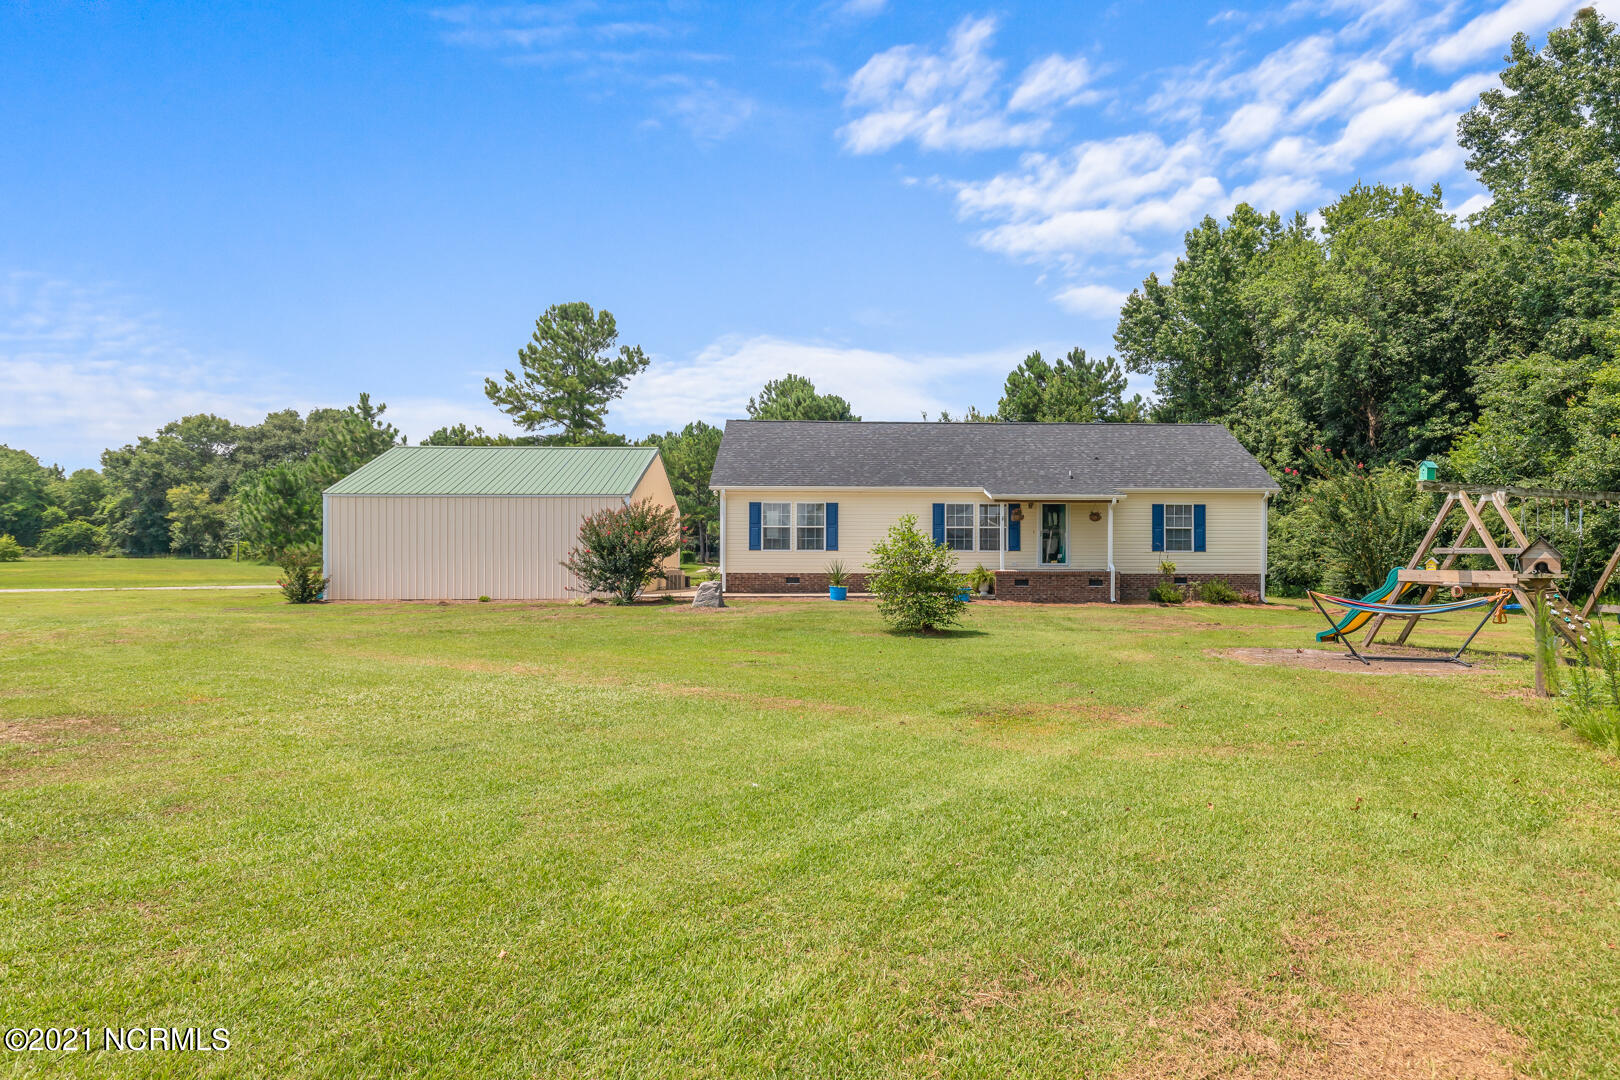 Are you are looking for a beautiful home located in the country, but yet have the conveniences of a small town? If so, this immaculate 3 bedroom, two full bath modular home is situated on 1.34 acre tract just outside of Beulaville. It is built on a permanent foundation. The master bedroom has a trey ceiling with a spacious walk in closet and a sitting room that is large enough to be used for extra workout space, crafts, nursery, etc. The master bath has a garden tub, additional walk in shower, and double vanities. The kitchen is combined with a dinning area. This home is set off of Hwy. 24 making it convenient to Richlands and Jacksonville to the MCAS Air Station. The kitchen is combined with a dinning area.  This home includes a detached two car garage of 900 Sq. ft. which is cooled and heated. There are many options for this space, storage, rec. room, workout space, tractors, boats, etc. You will find a additional storage shed on this property with a shelter which can provide more storage.  Let's not forget you get all of this with a large open yard for playing, animals, entertaining, etc. Agent Remarks: